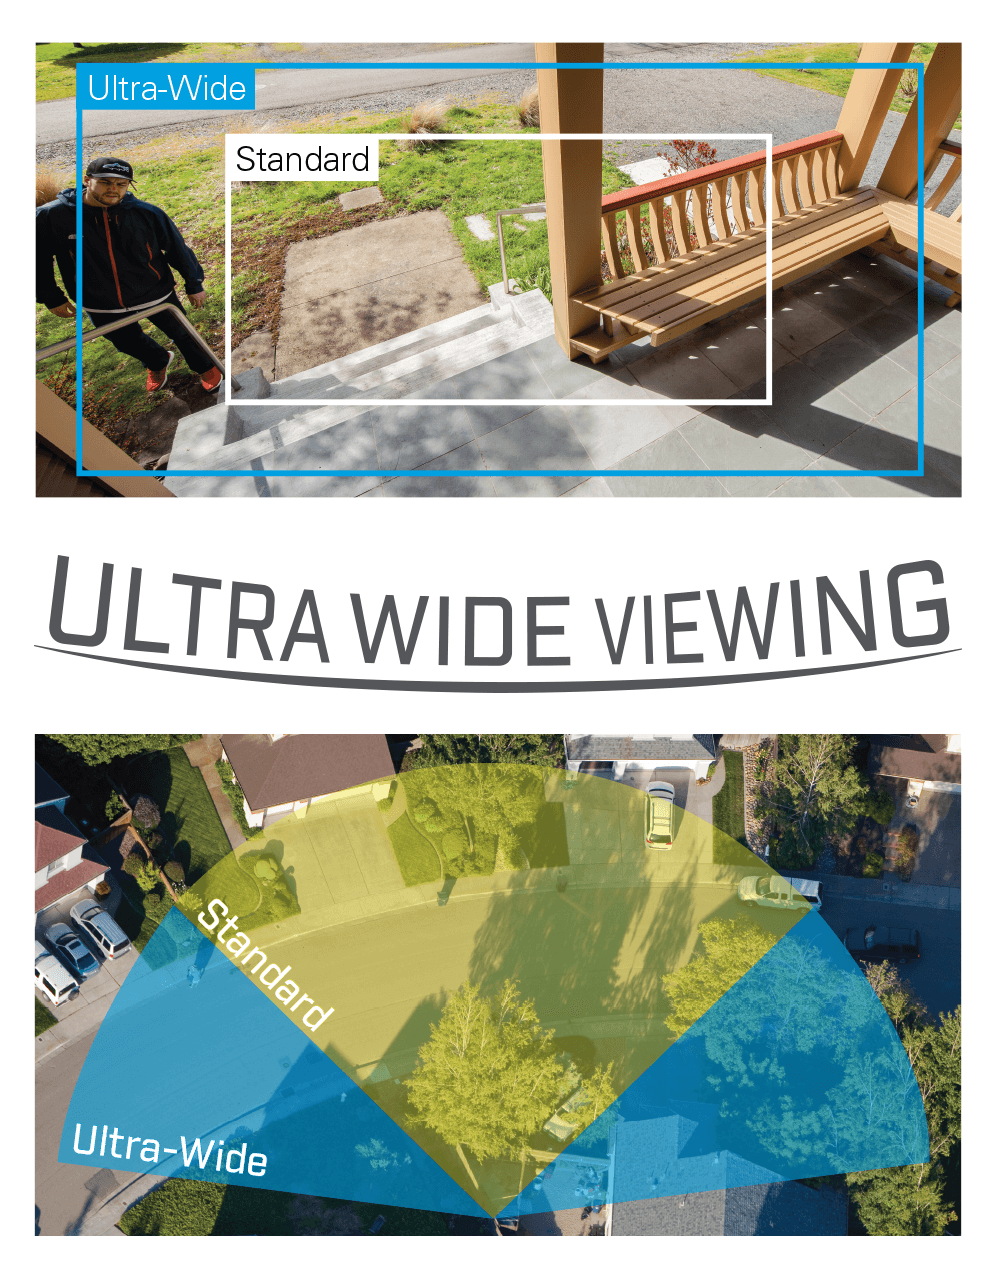 Ultra-Wide viewing covers the entire scene